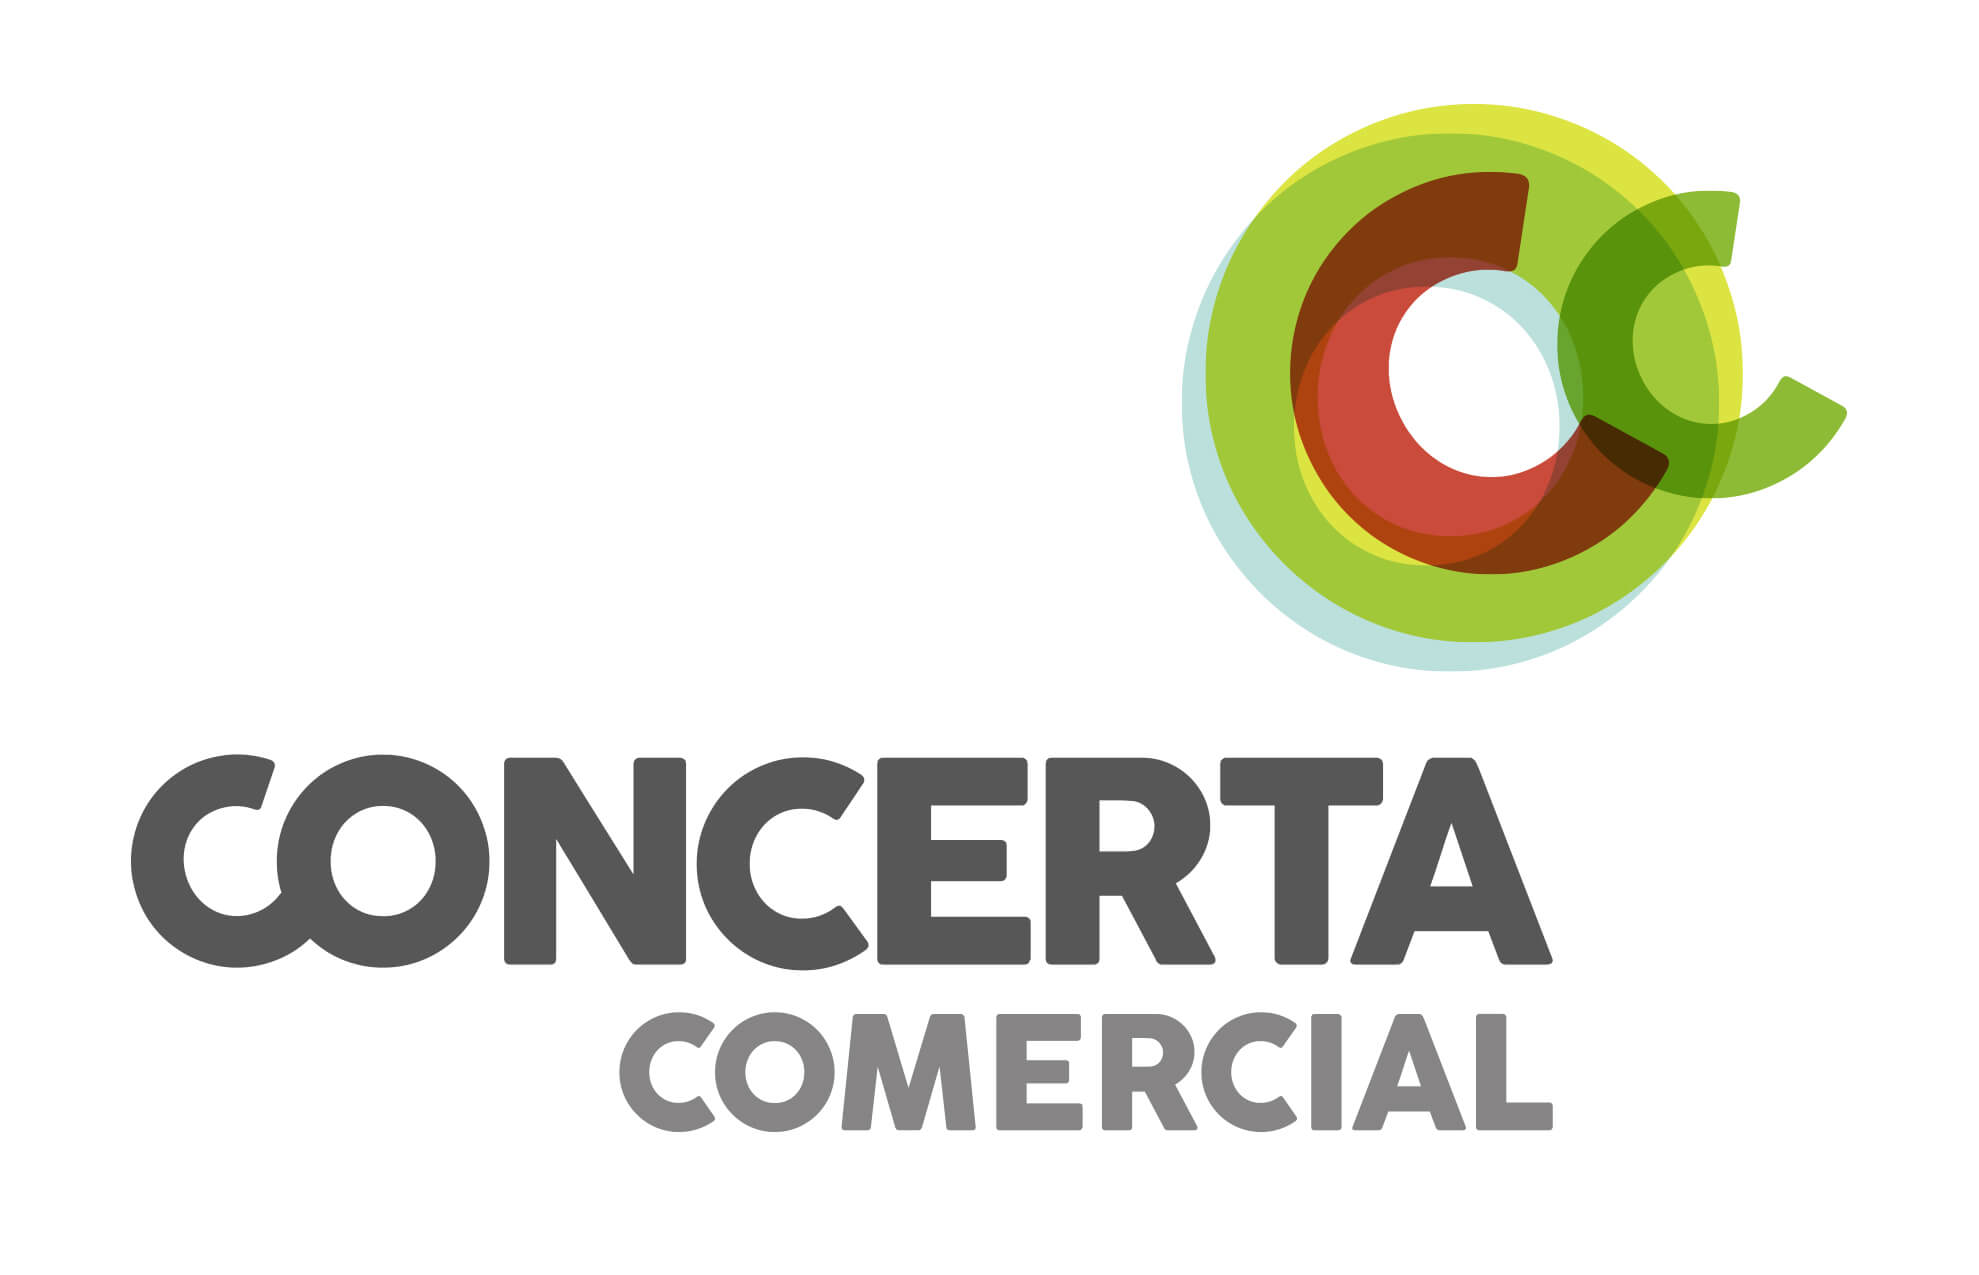 Concerta comercial branding design - Branding. Graphic identity. Services